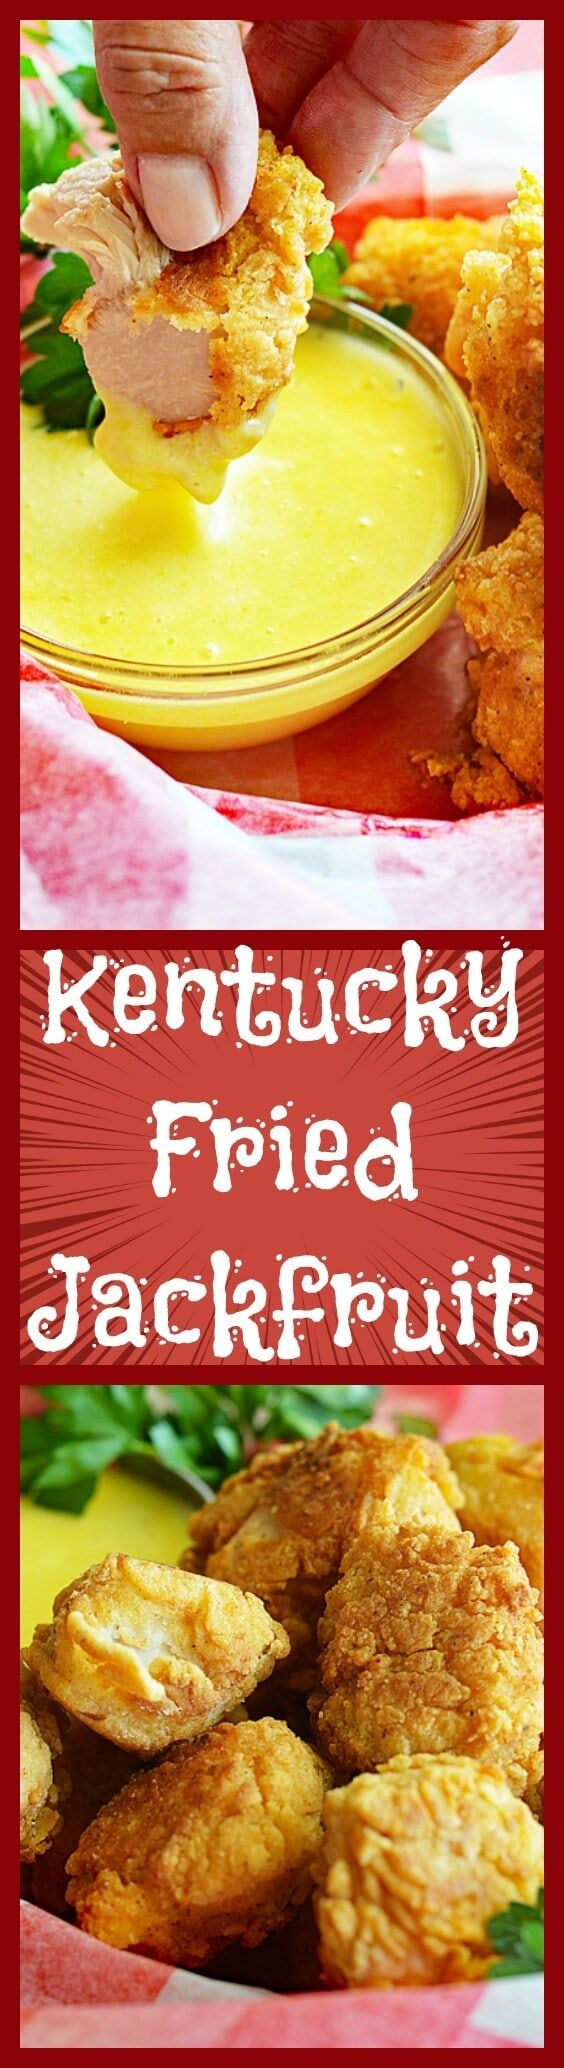 Kentucky Fried Jackfruit